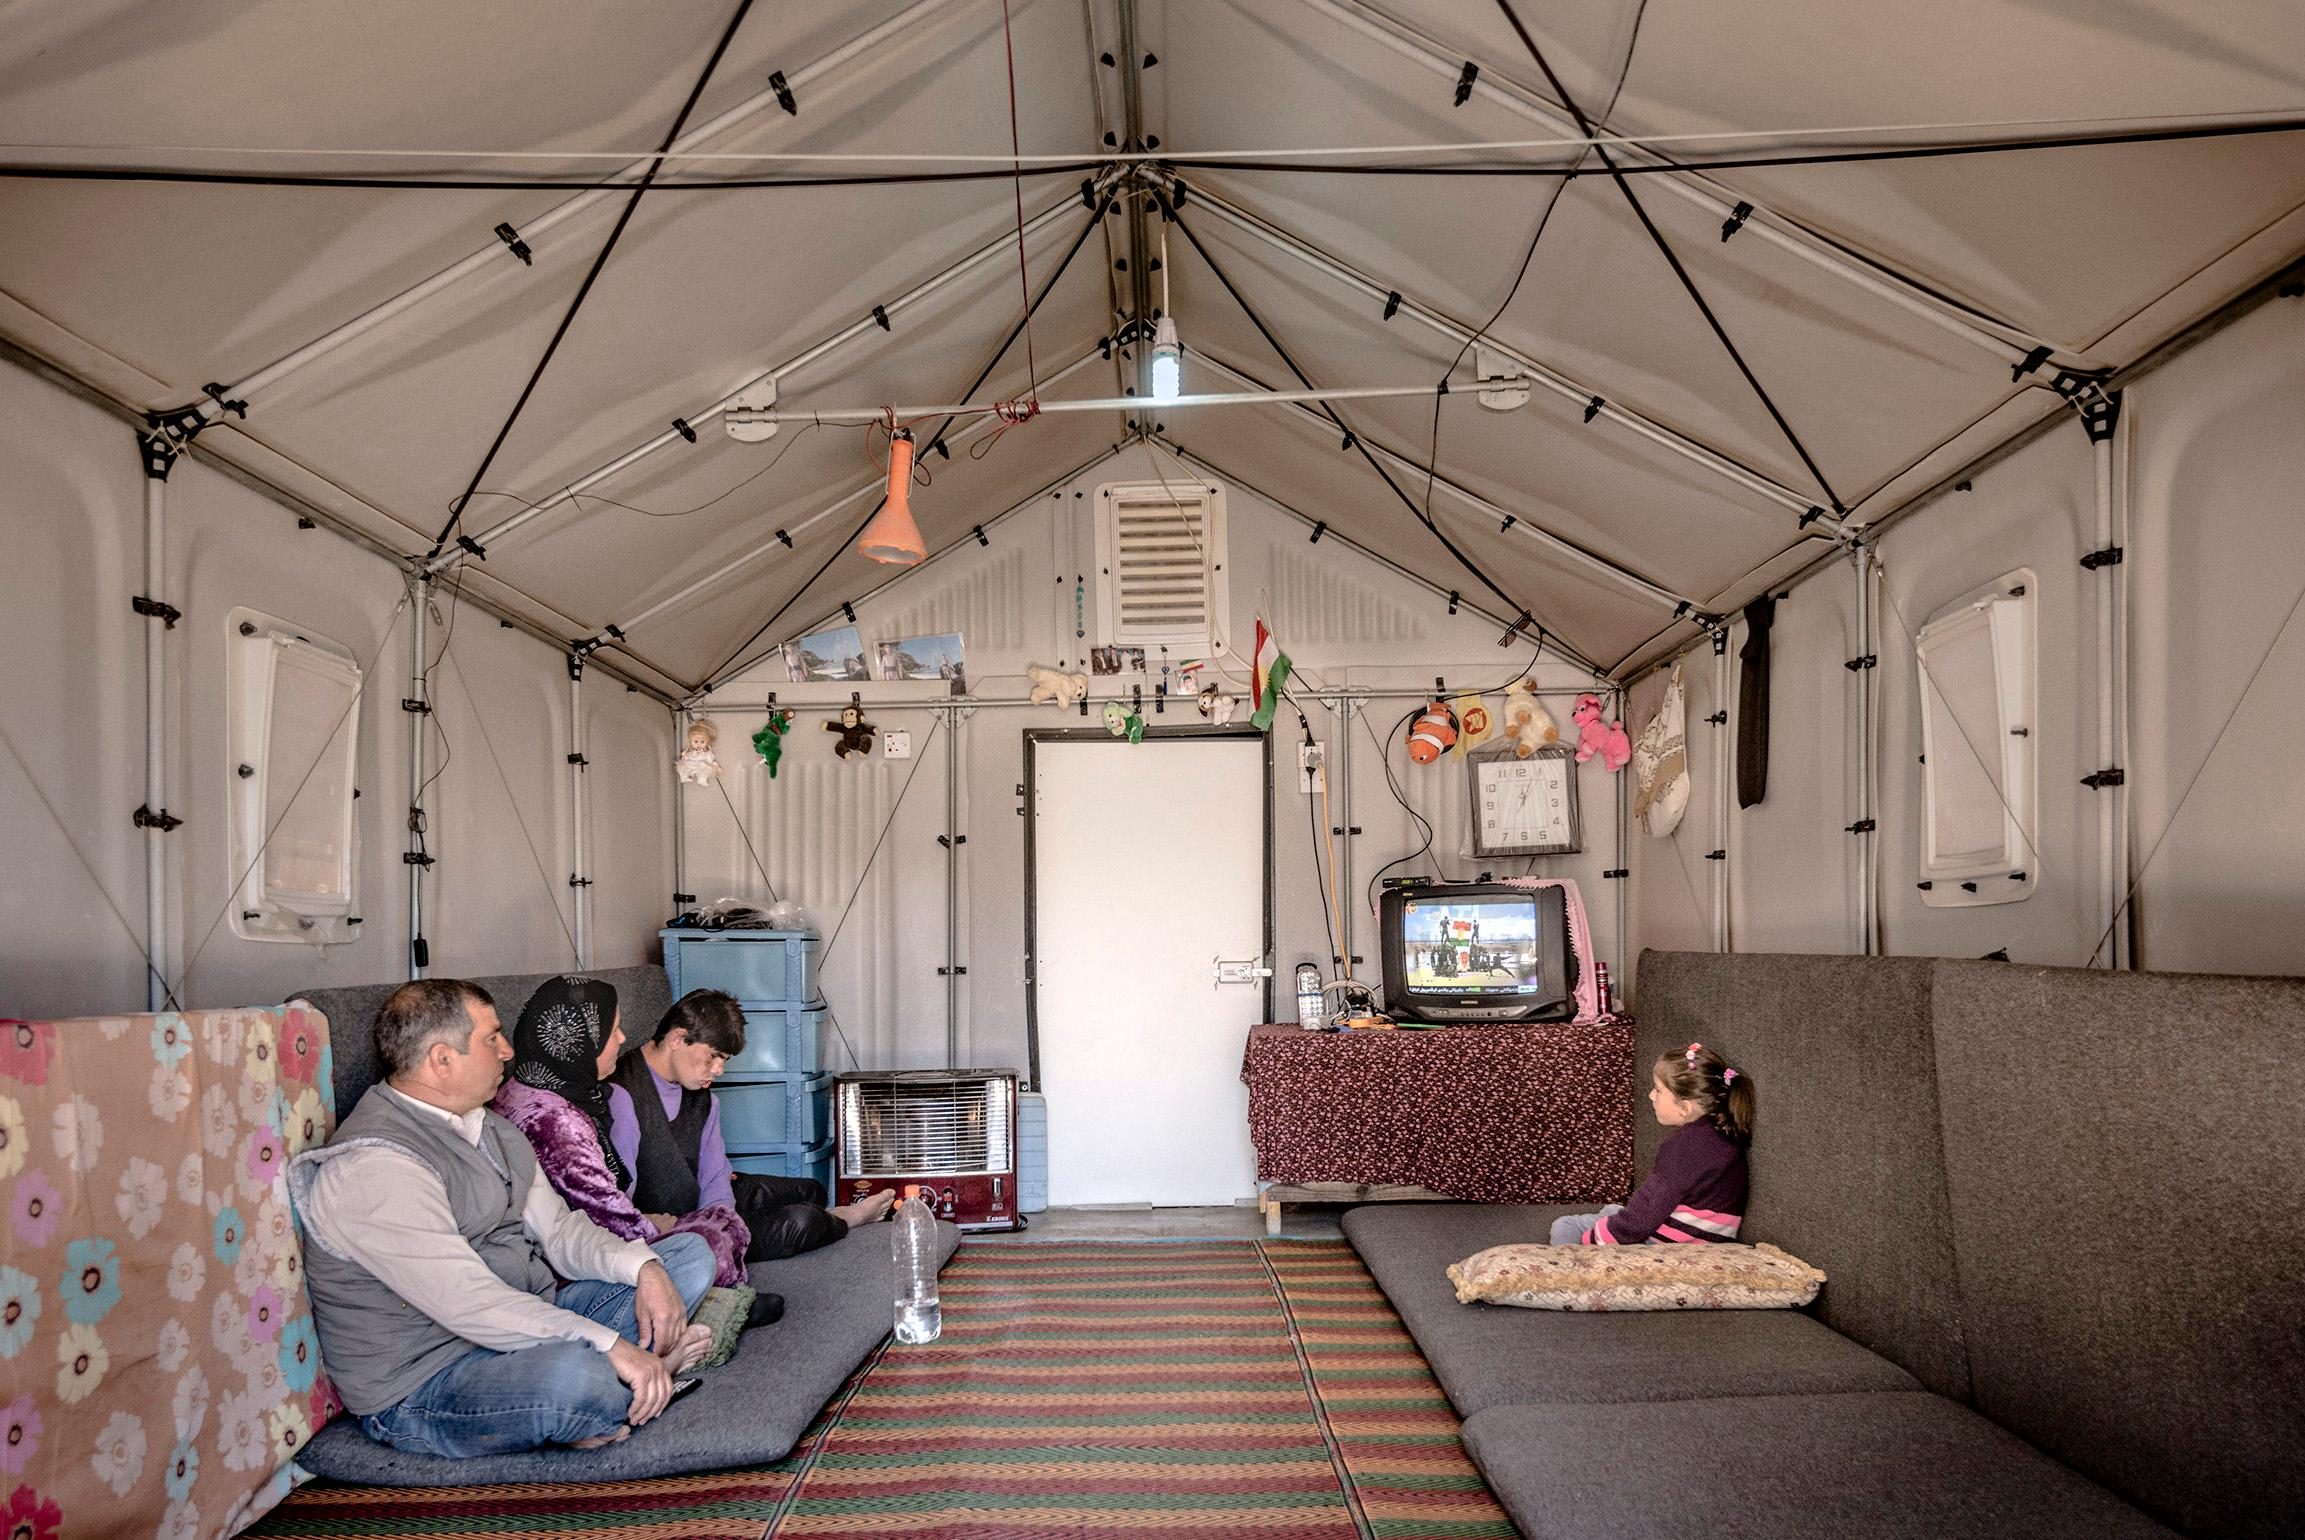 Two grown-ups and two children sitting on cushions on the floor in a tent with solid walls.